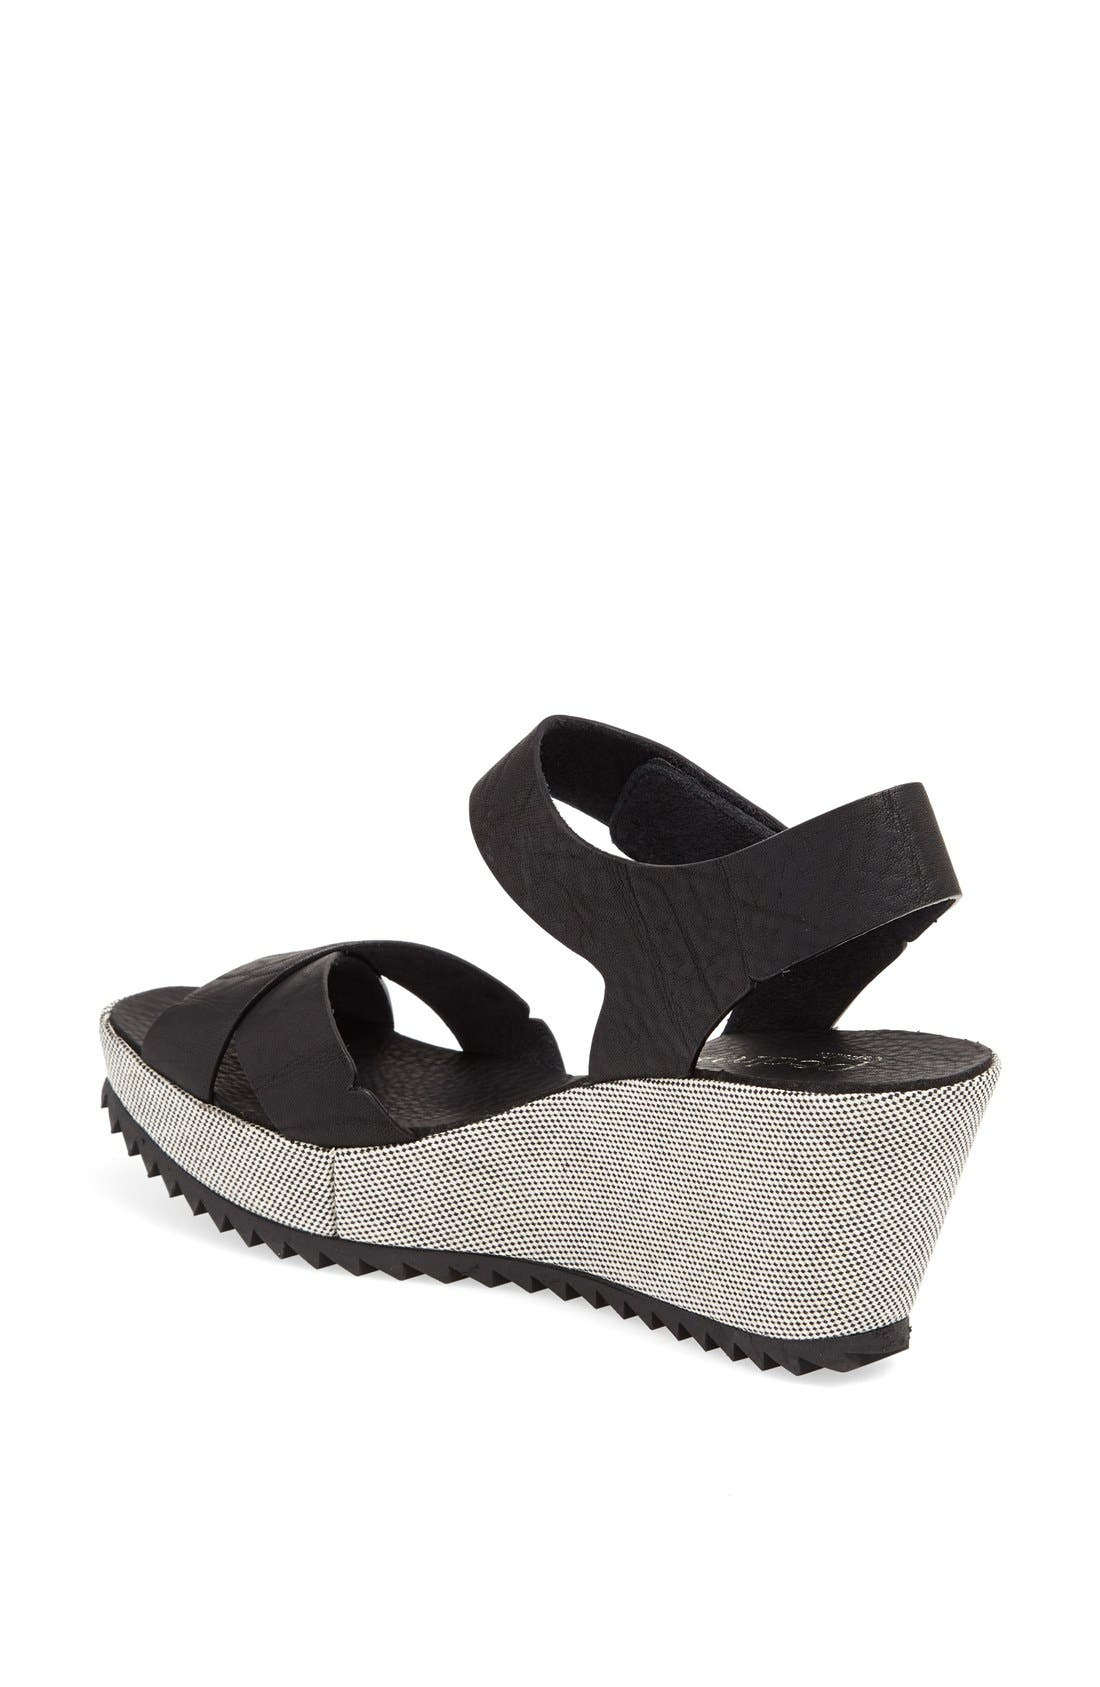 Alternate Image 2  - Pedro Garcia 'Freida' Crisscross Wedge Sandal